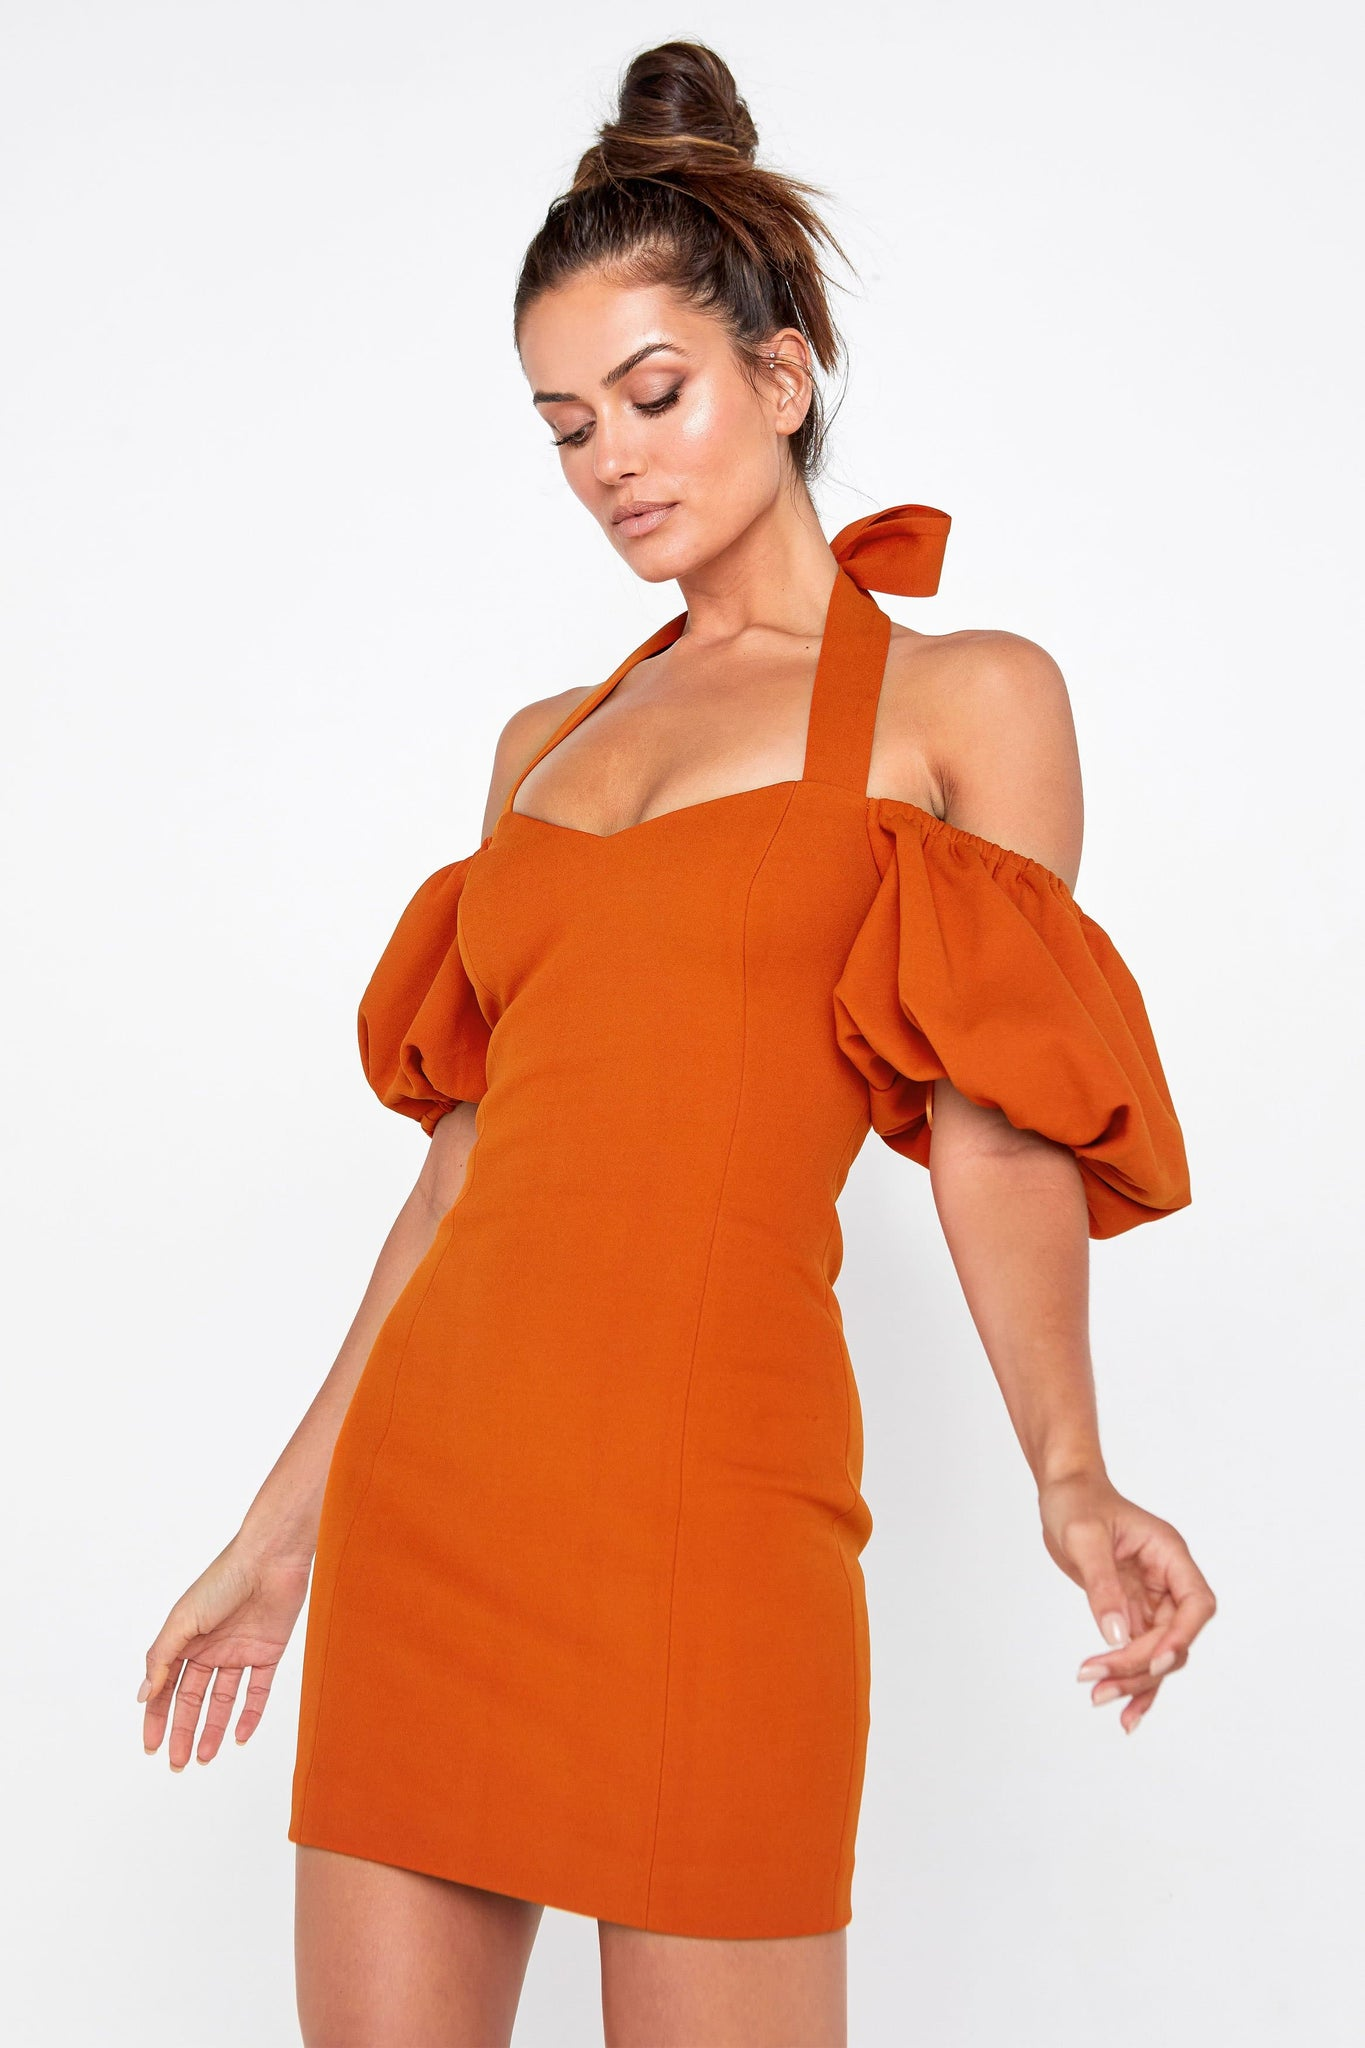 The Elevation Dress